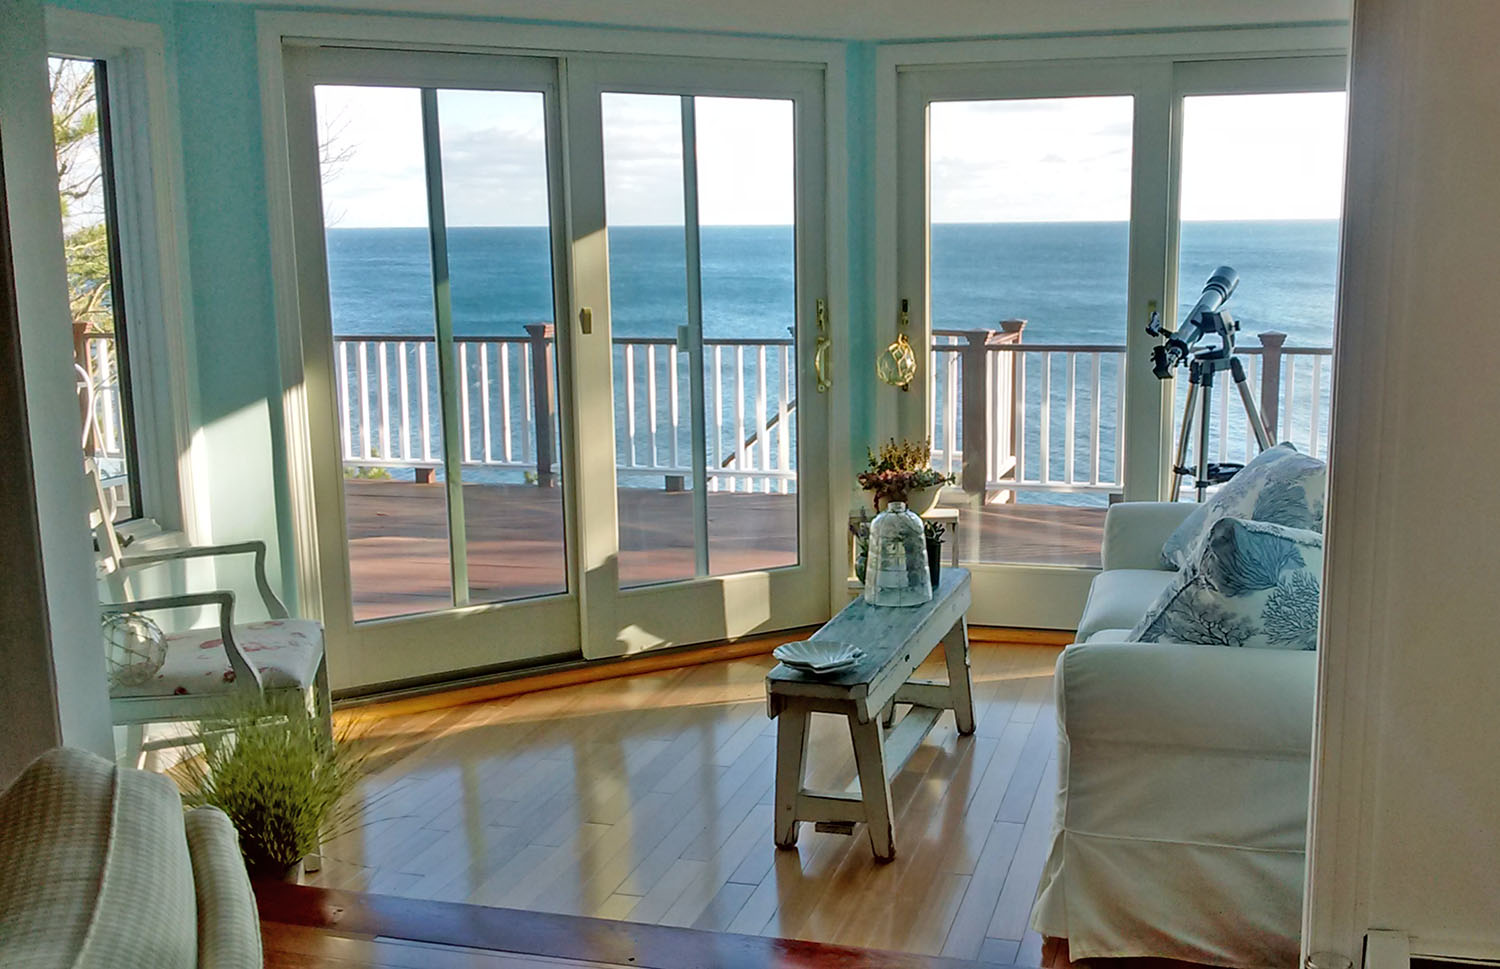 Vacation Home Rentals and Beach Houses - Gloucester MA - Strawberry Cove House